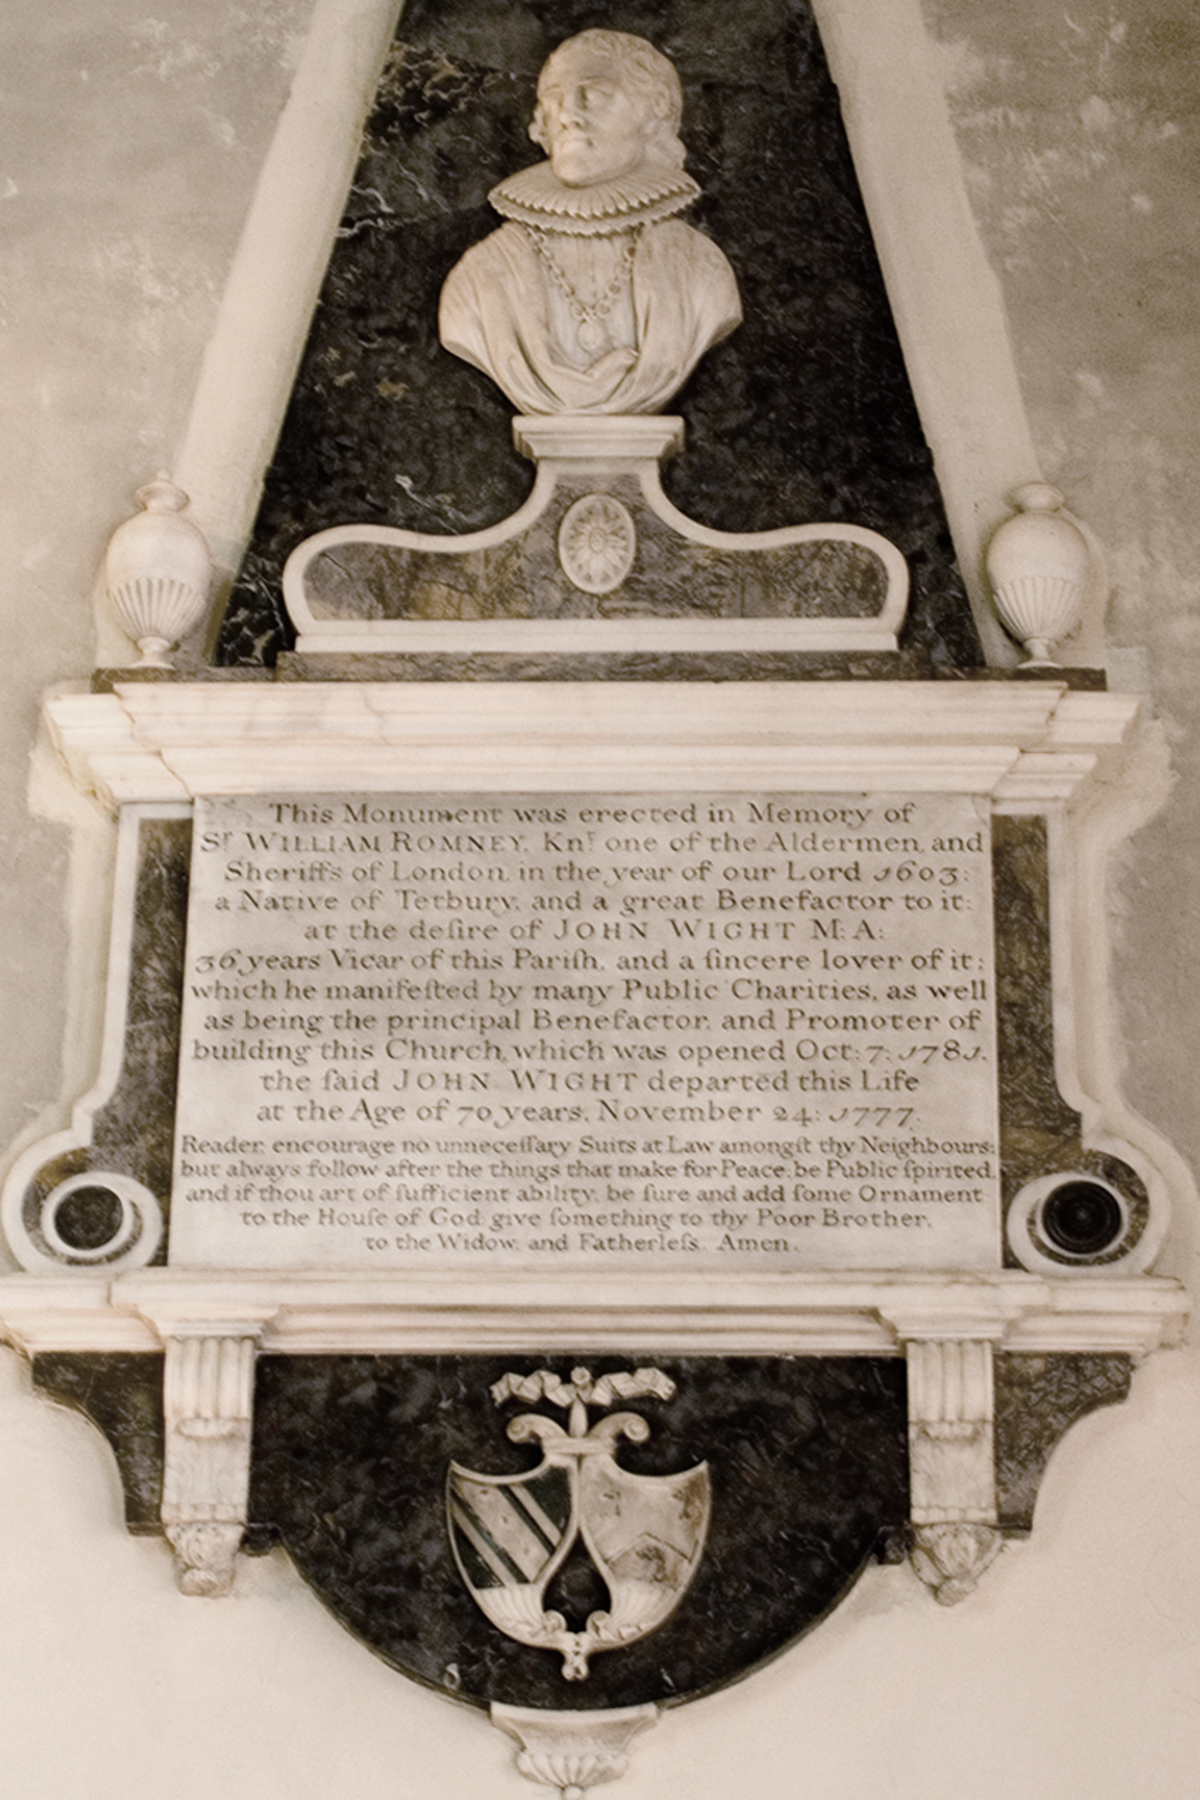 Sir William Romney monument